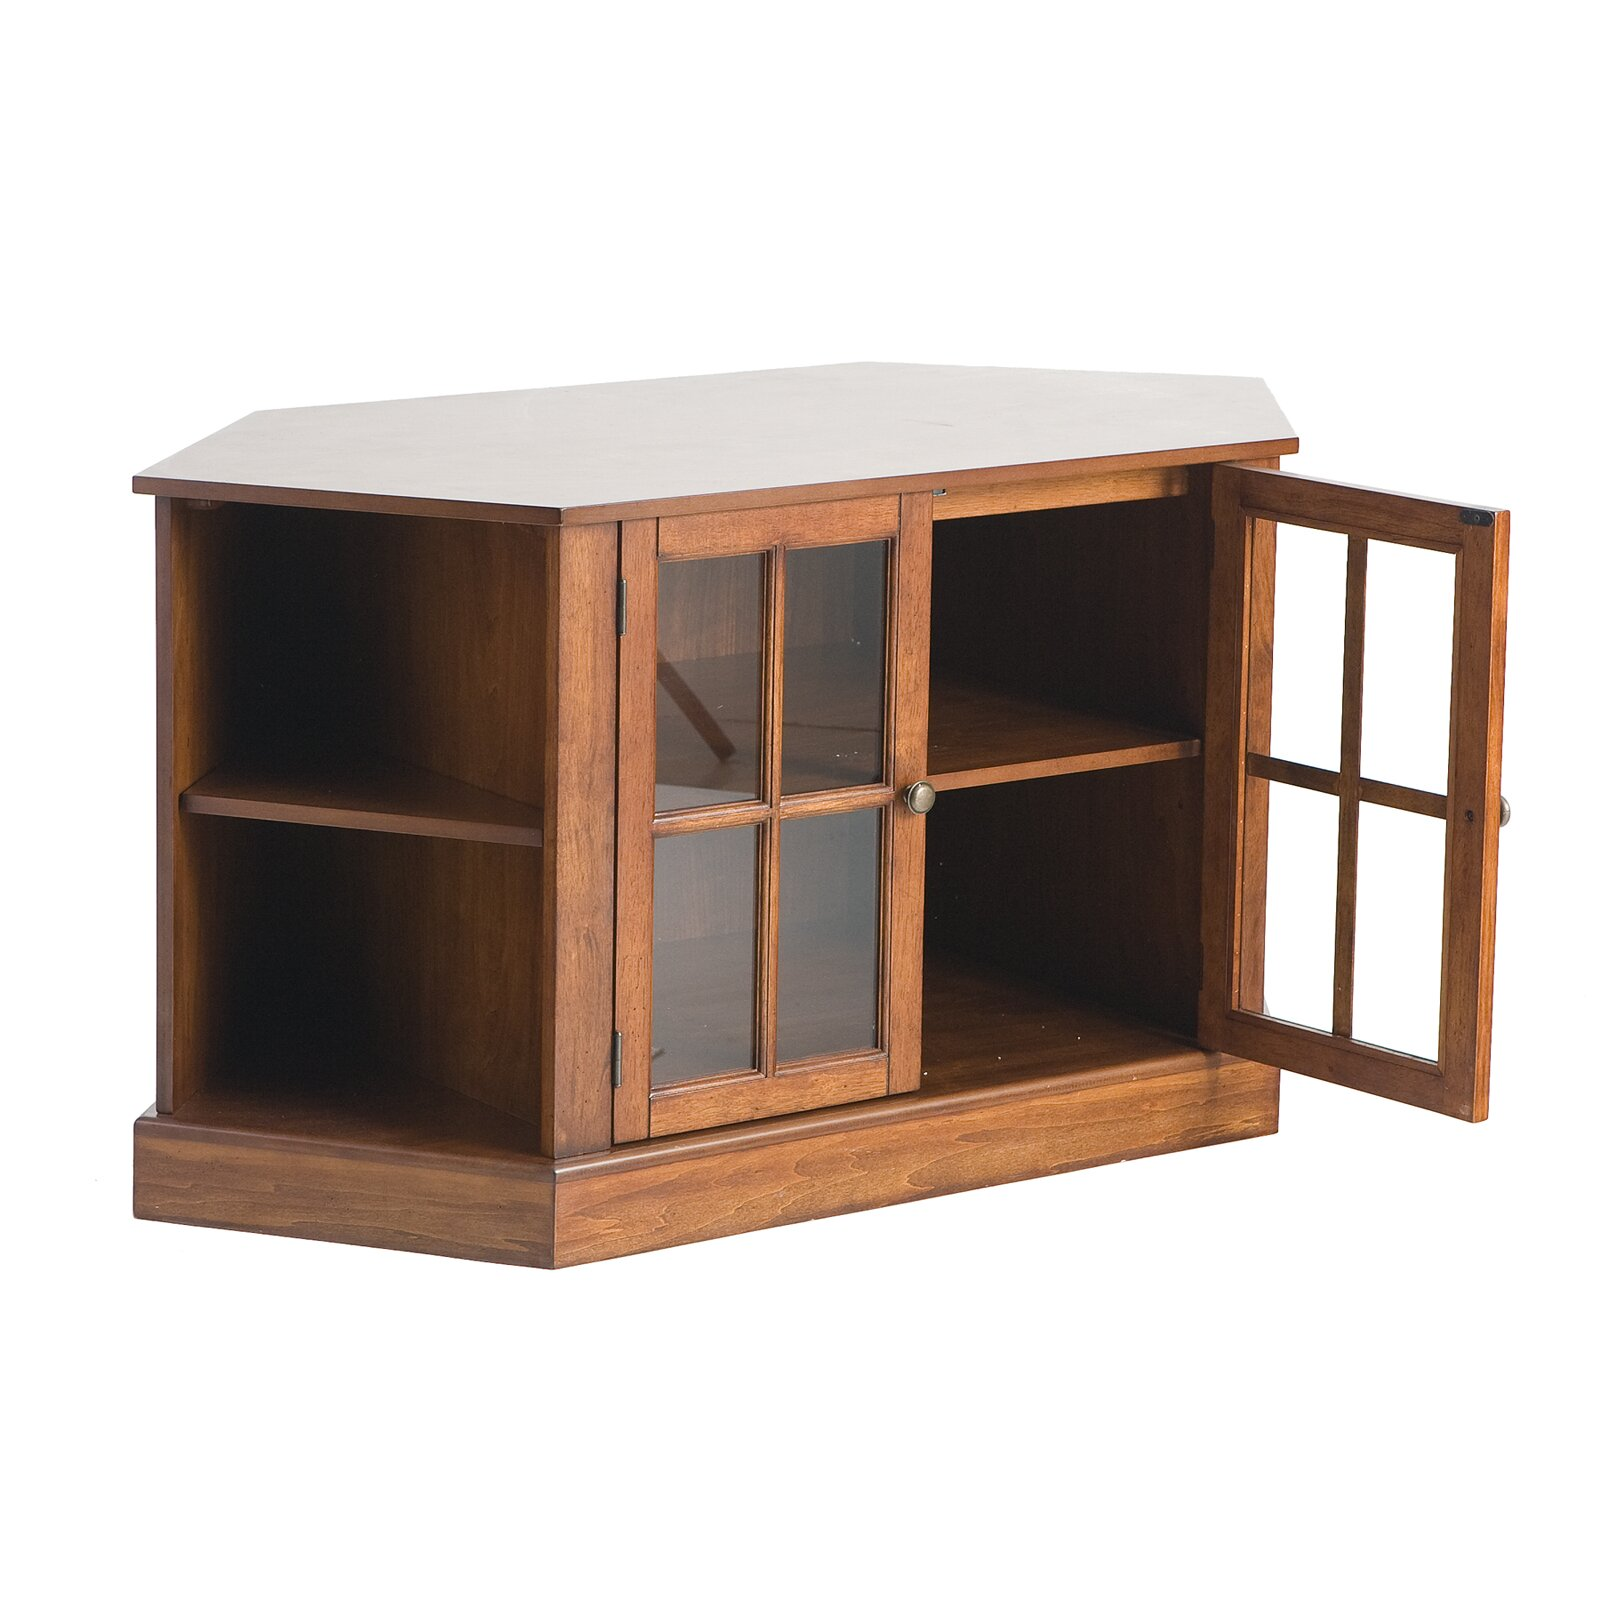 Home etc natuna tv cabinets for tvs up to 42 reviews for Furniture etc reviews